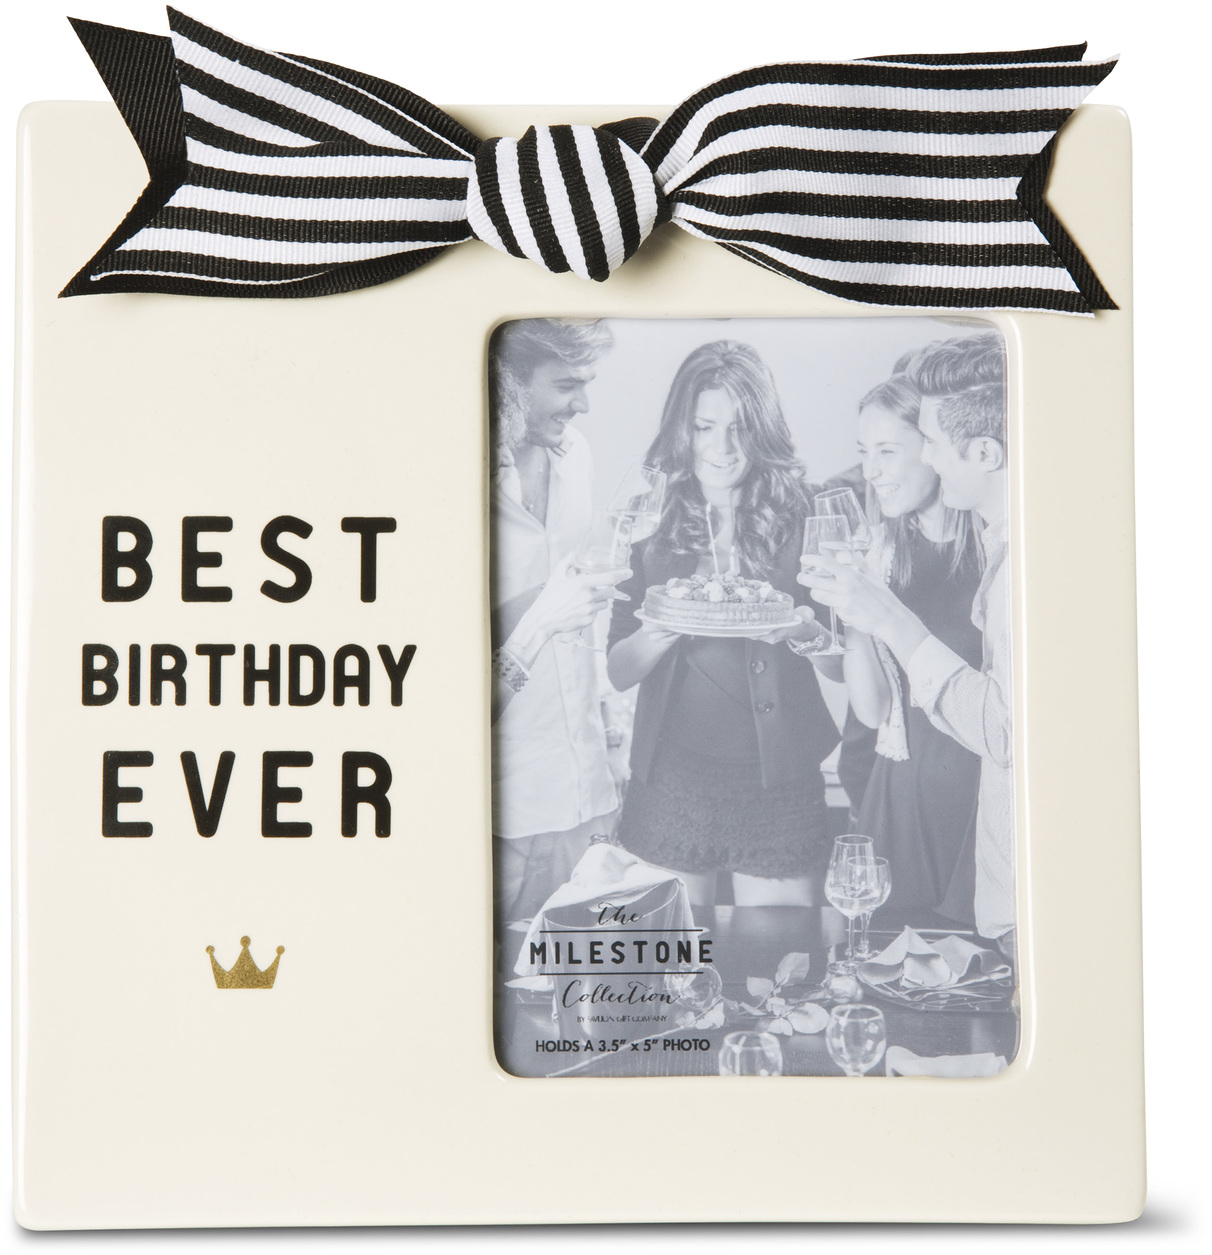 "Best Birthday Ever by The Milestone Collection - Best Birthday Ever - 7"" x 7"" Frame (Holds 3.5"" x 5"" Photo)"